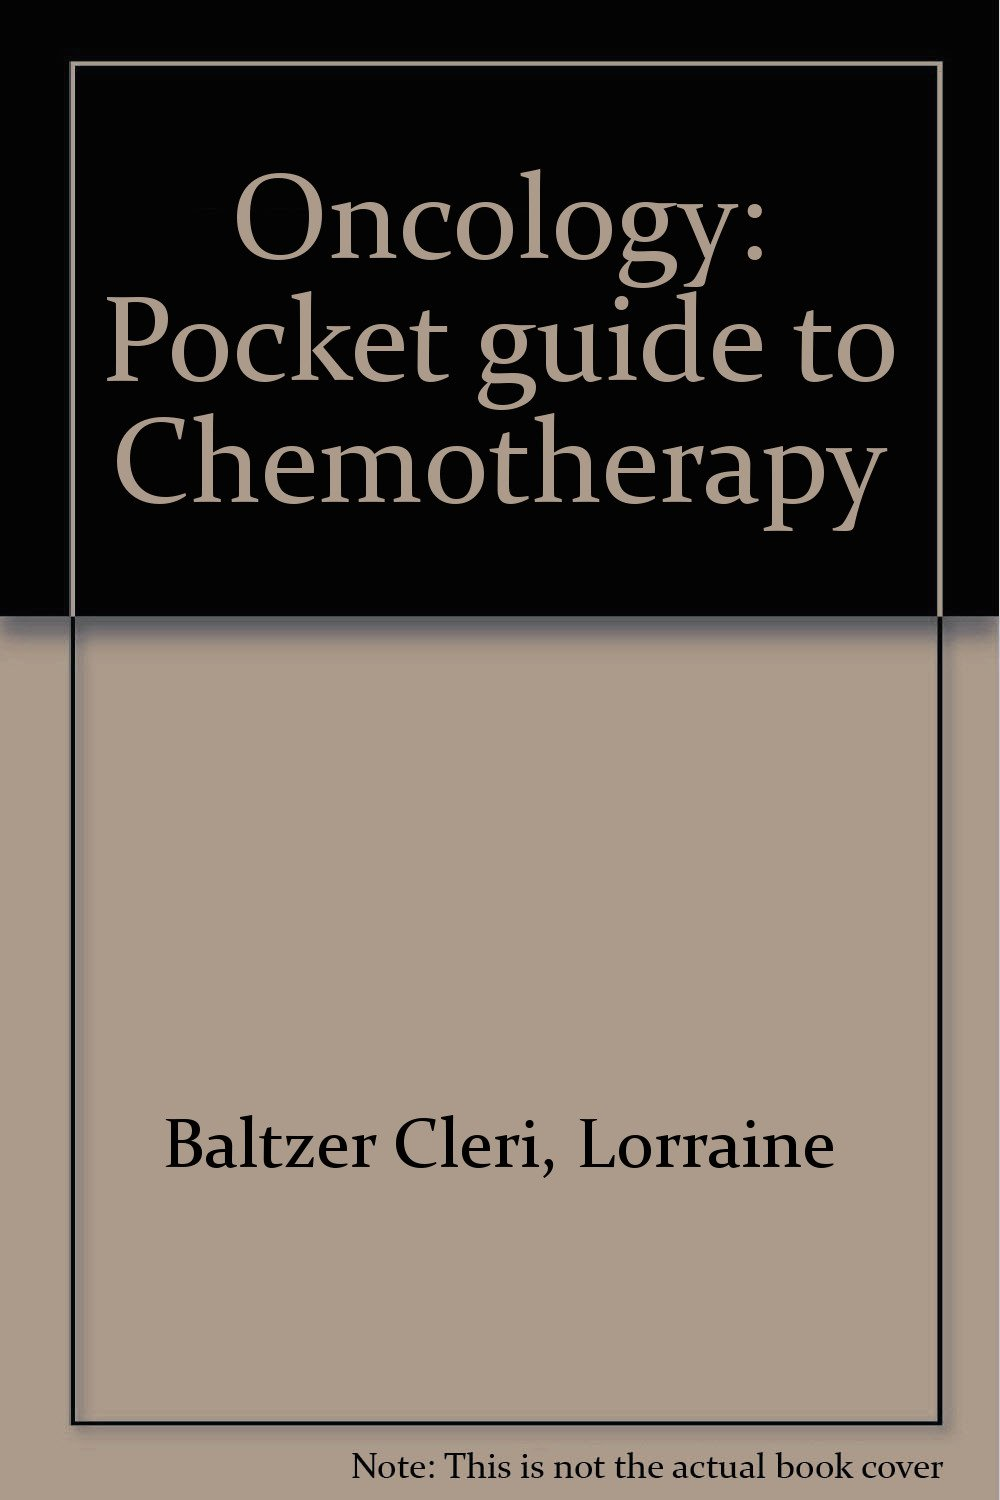 Oncology: Pocket guide to Chemotherapy PDF